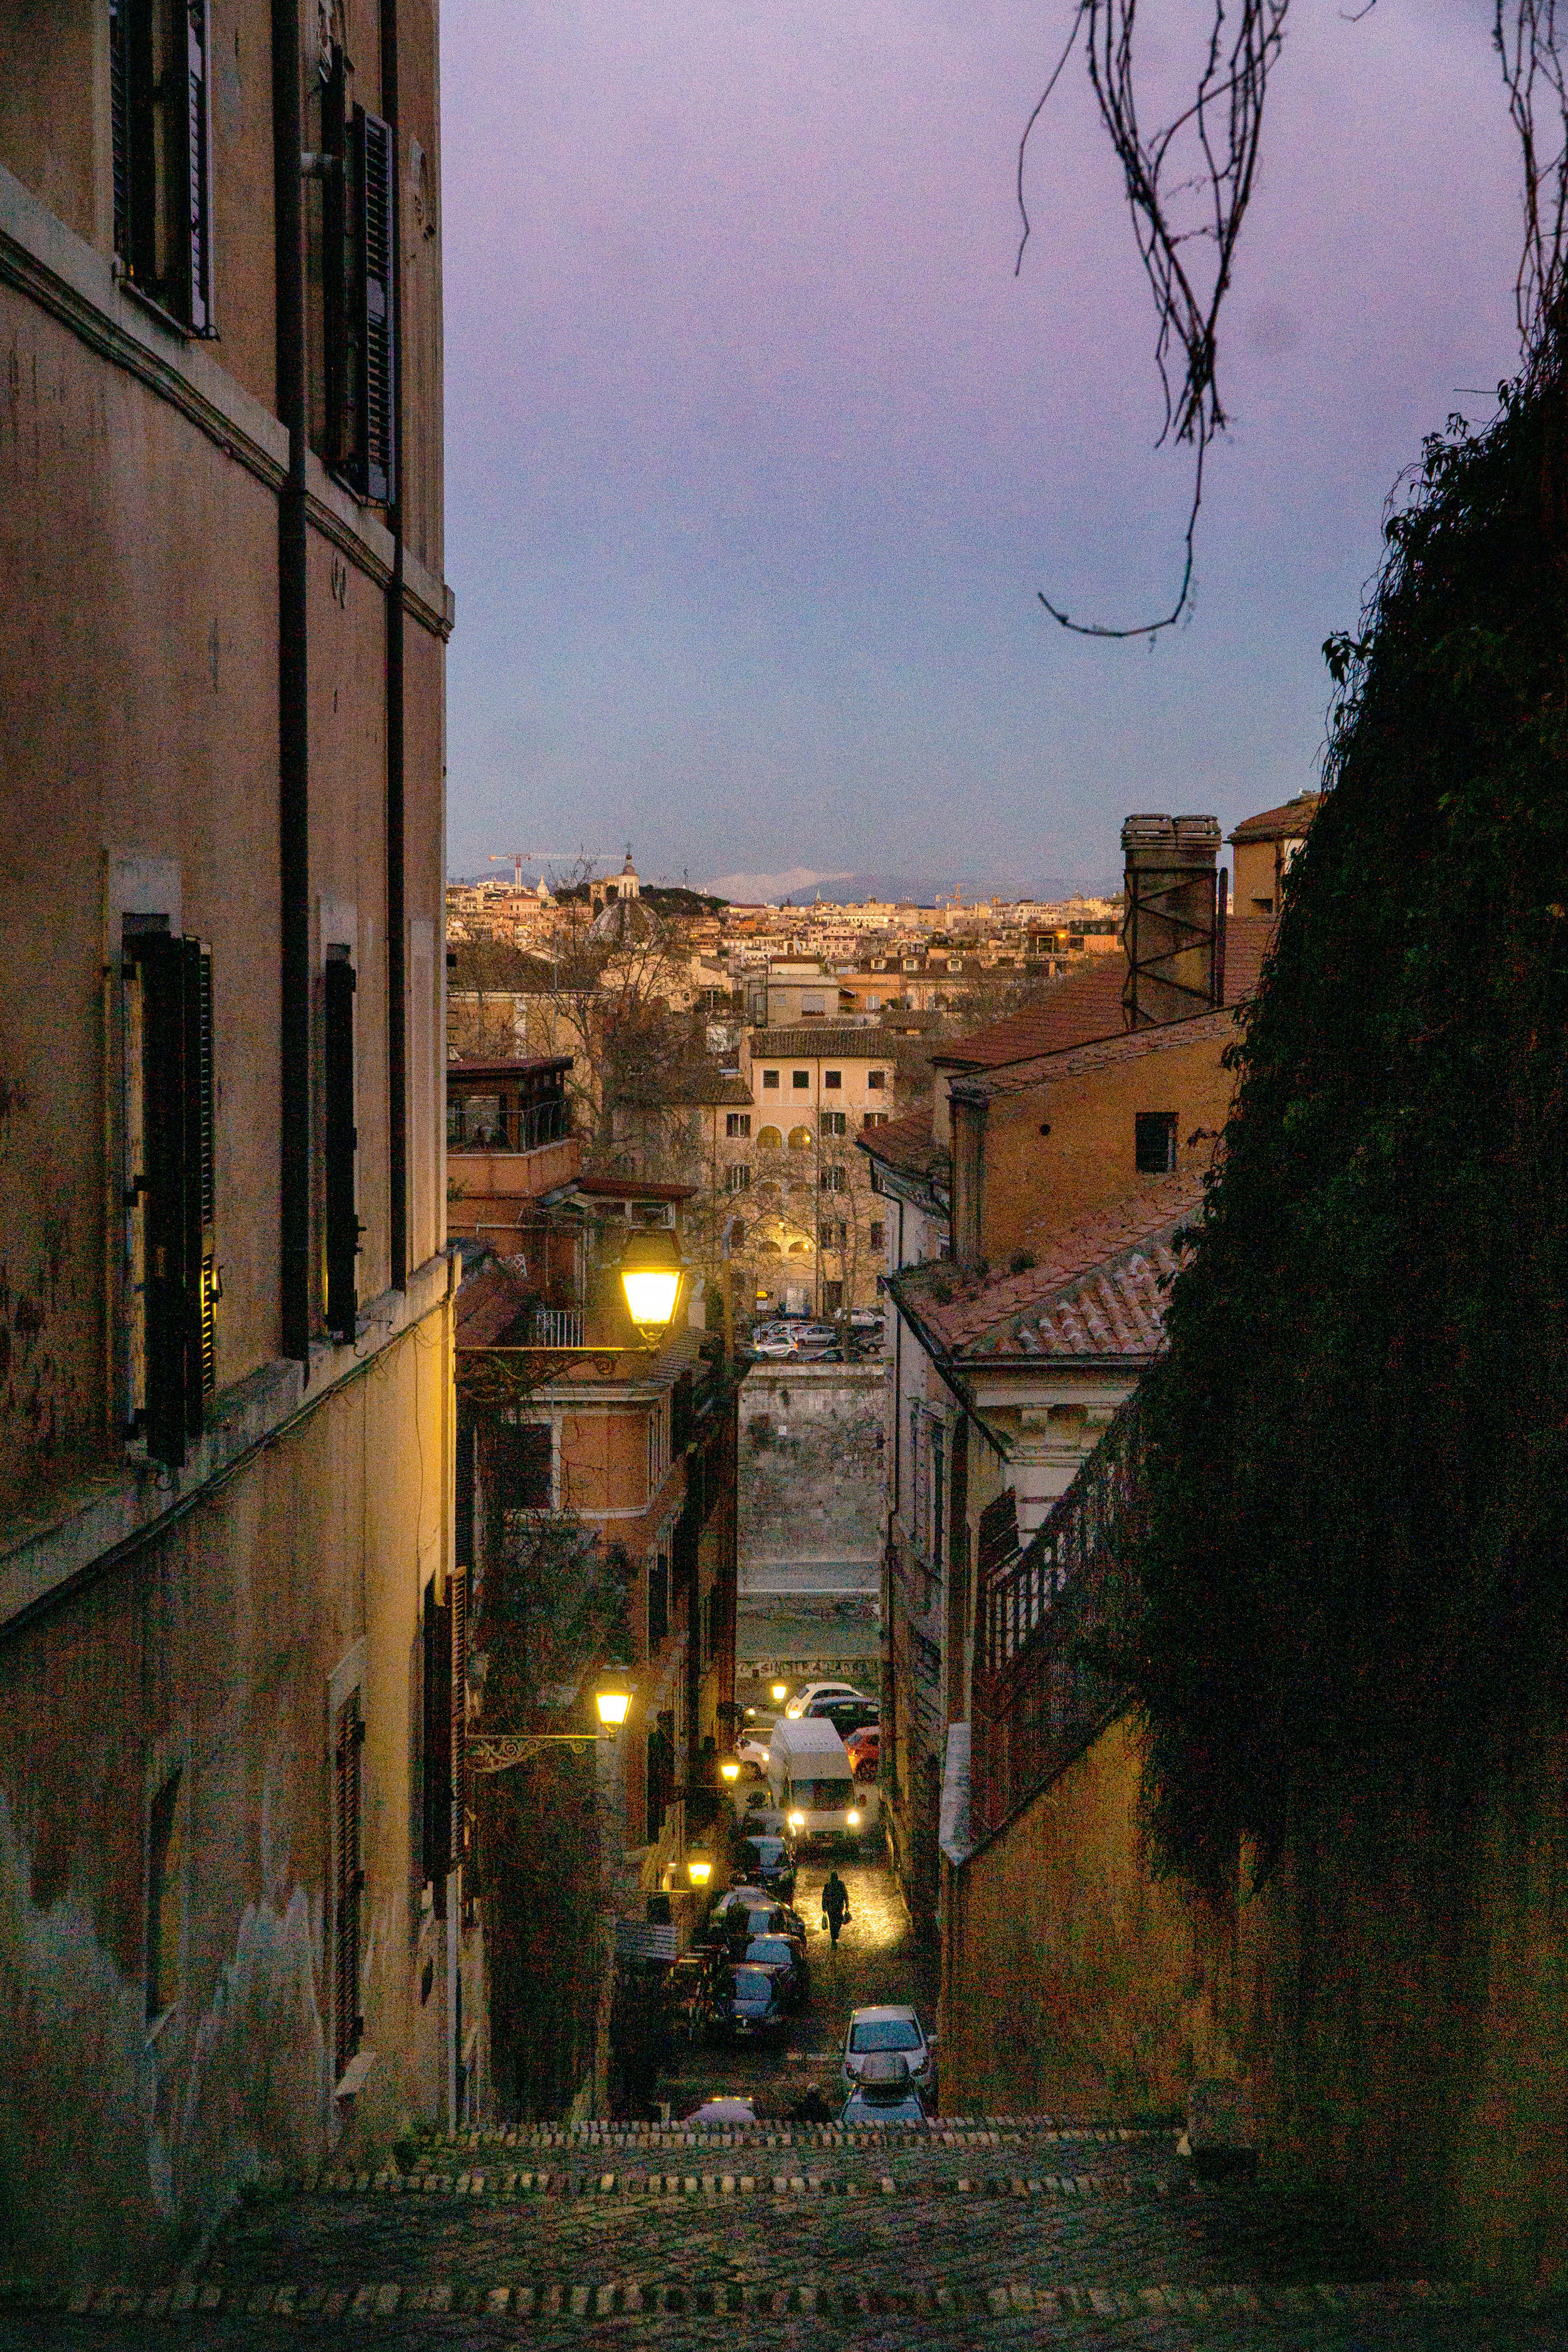 rome_st.peter_vickygood_travel_photography9.jpg